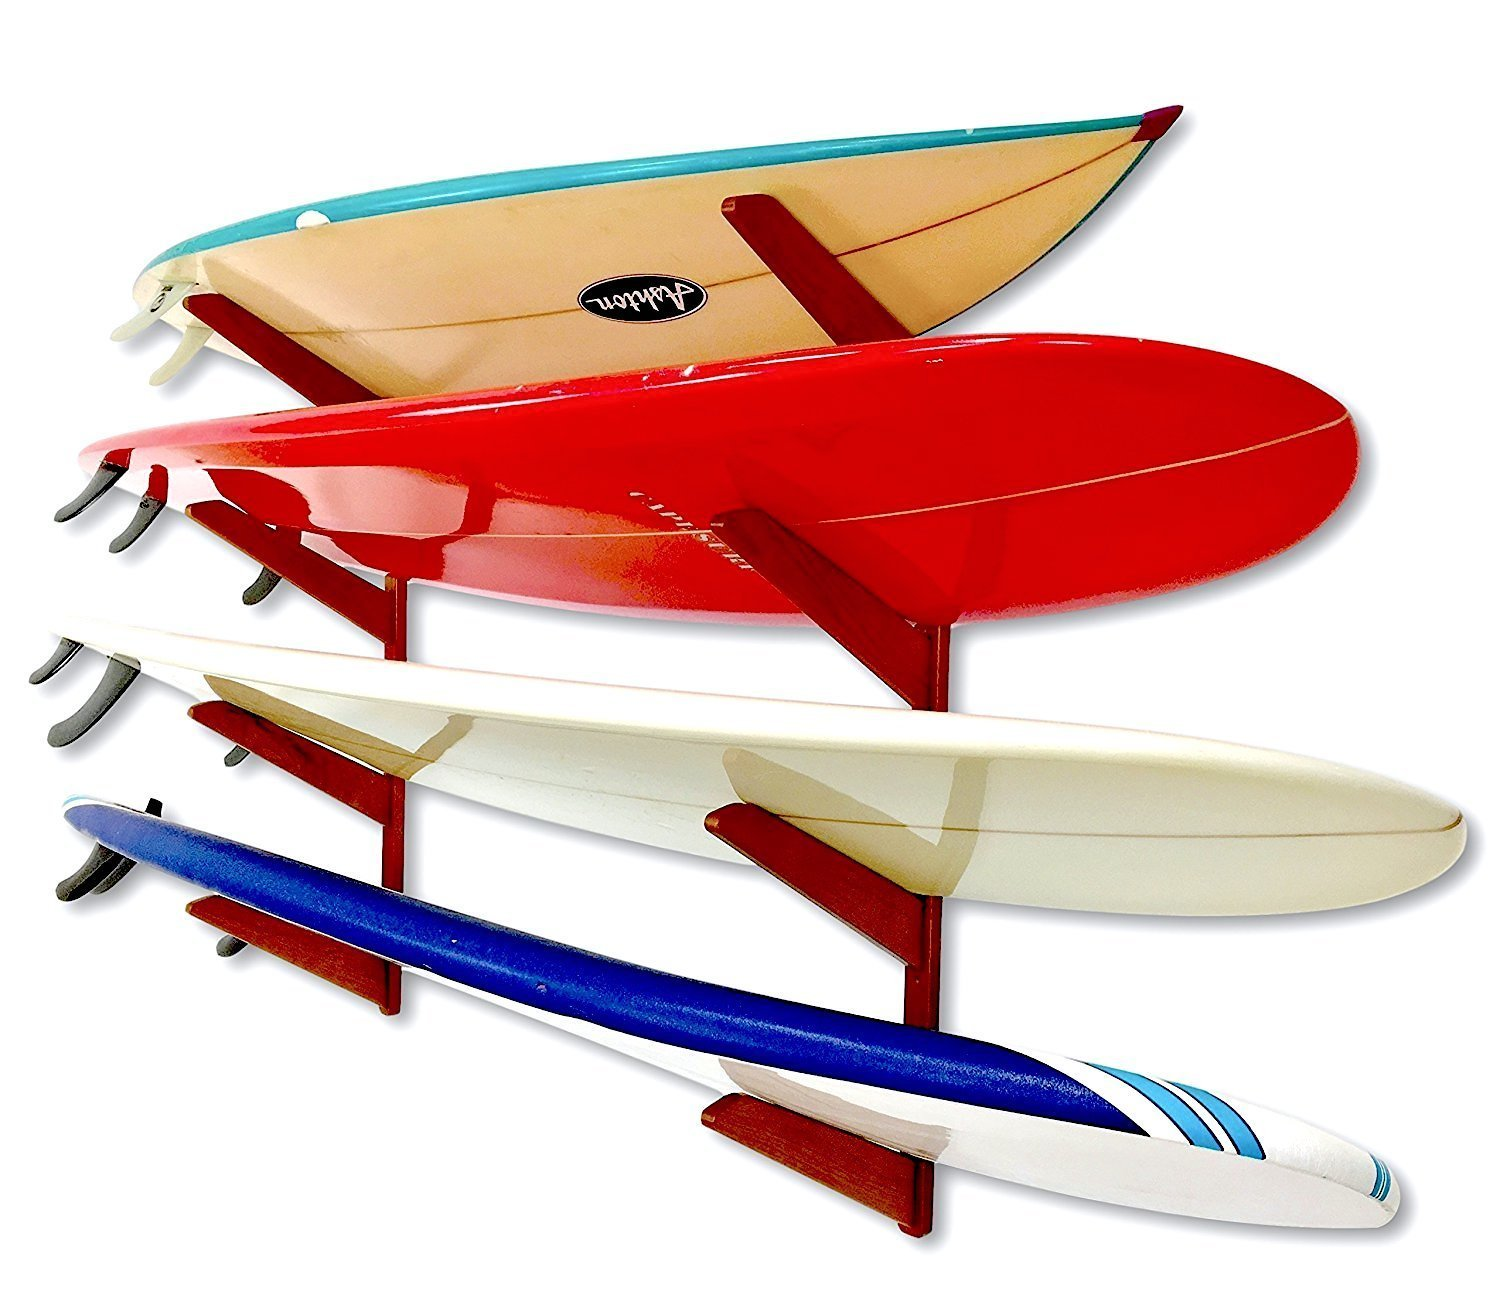 StoreYourBoard Timber Surfboard Wall Rack, Holds 4 Surfboards, Wood Home Storage Mount System by StoreYourBoard